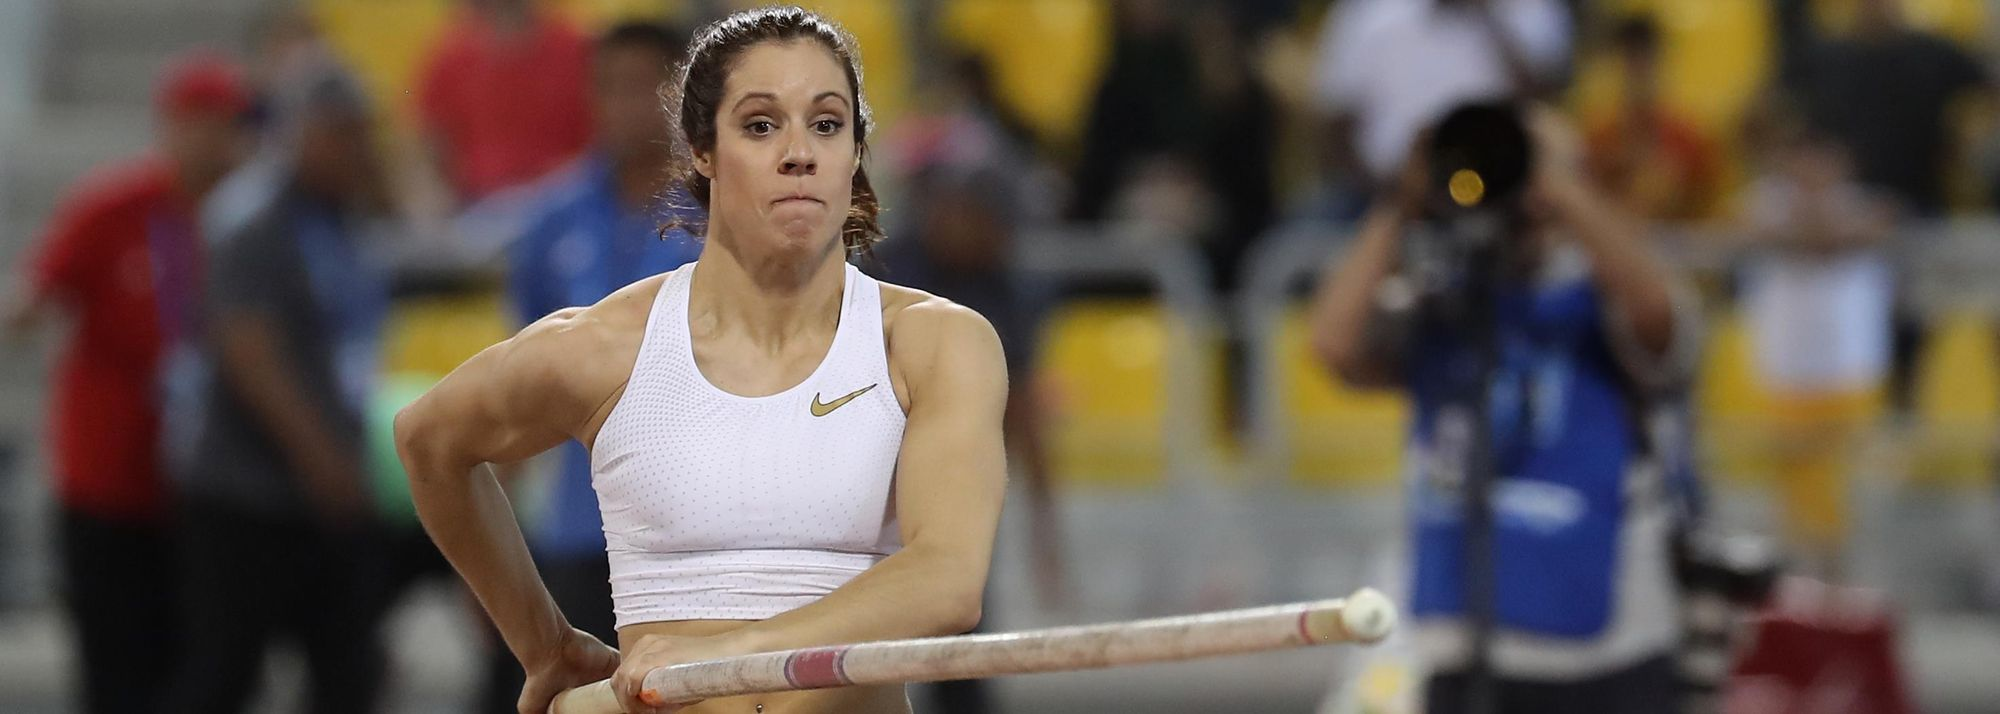 Some of the world's best pole vaulters will be looking to test themselves on the eve of the Tokyo Olympics when they compete at the Muller British Grand Prix – a Wanda Diamond League meeting – in Gateshead International Stadium on 13 July.